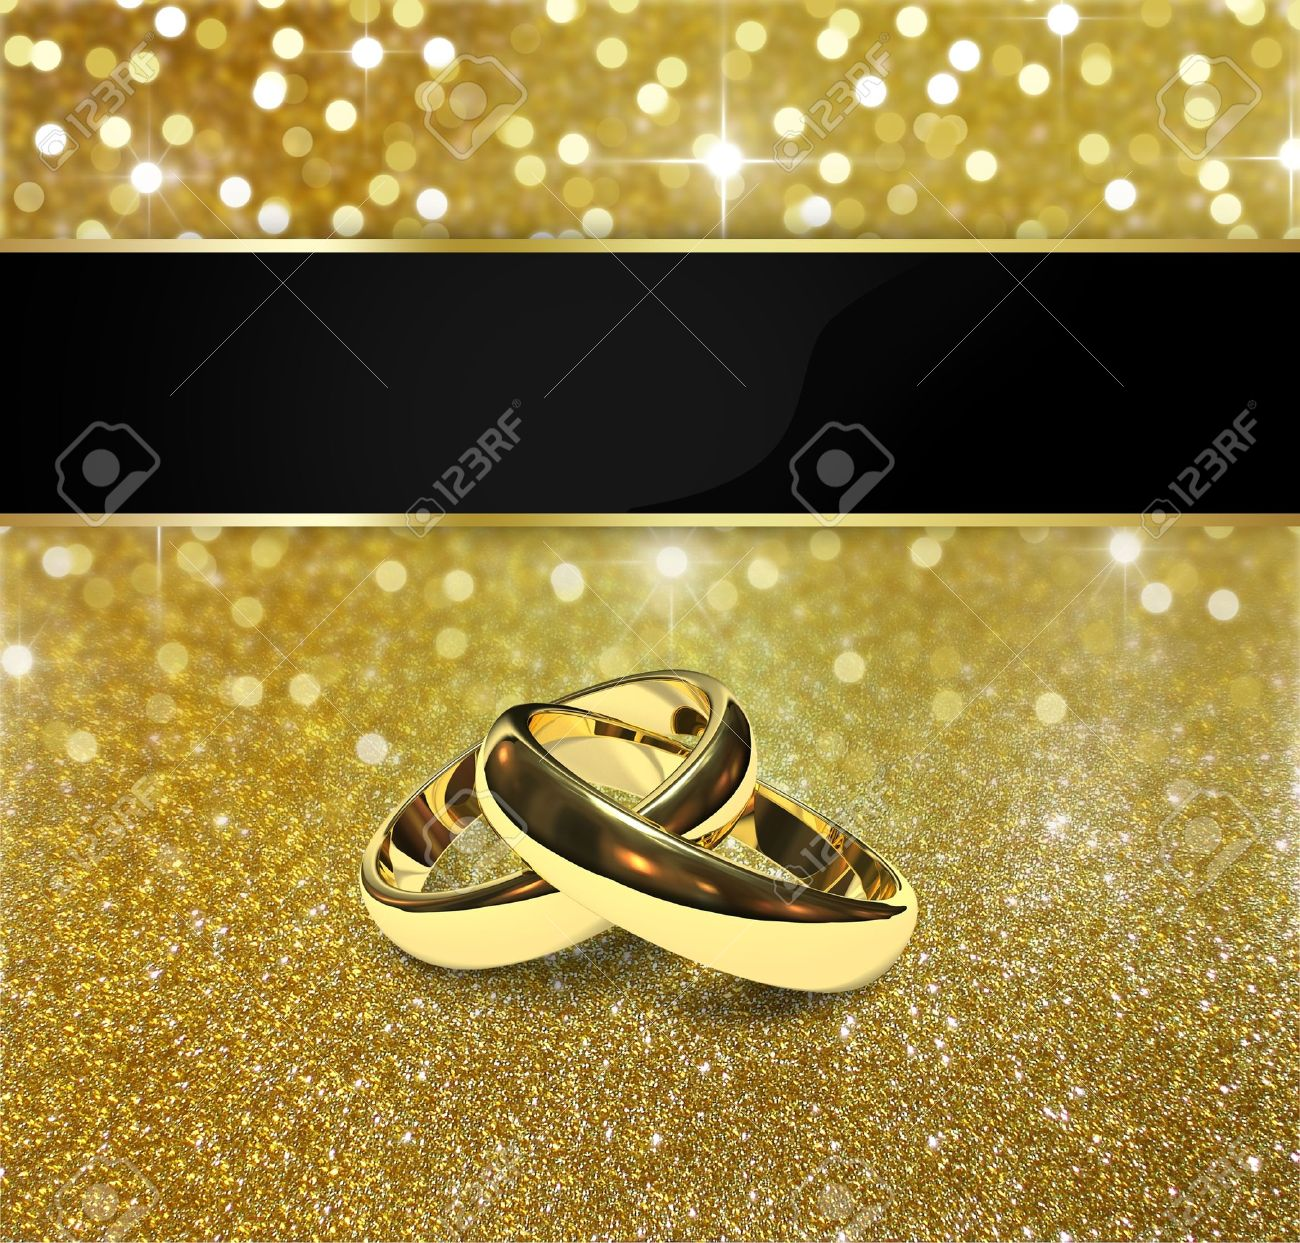 Elegant and luxurious gold design illustration  2 golden wedding rings on a gold glitter and bokeh background with sparkling  bright stars Stock Illustration - 13239422